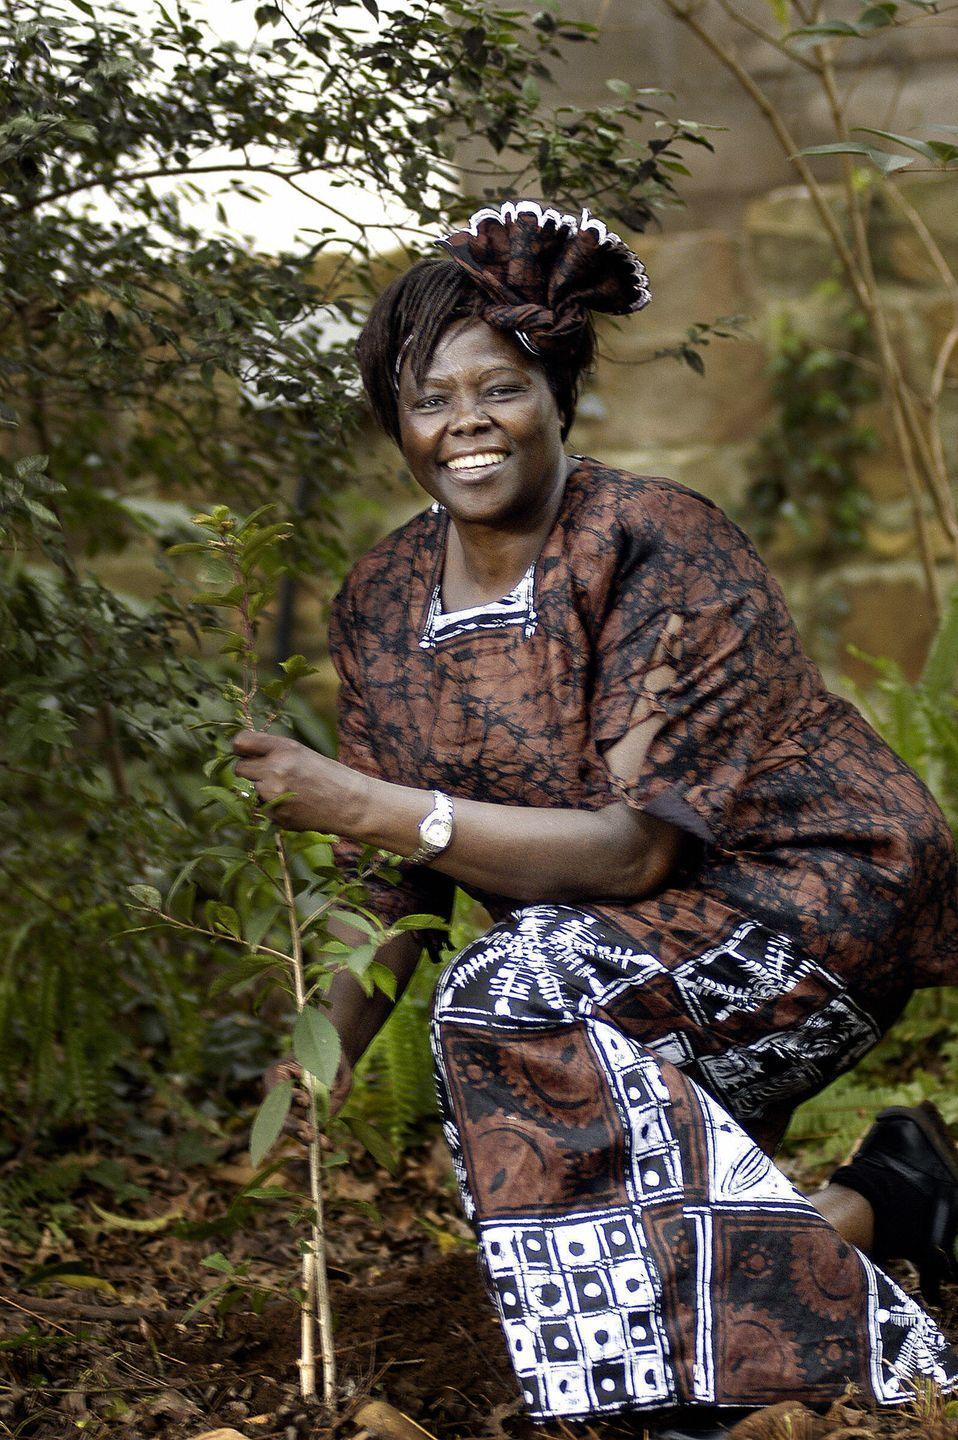 """<p>Wangari Maathai became the first black woman to win the <a href=""""https://www.youtube.com/watch?v=dZap_QlwlKw"""" rel=""""nofollow noopener"""" target=""""_blank"""" data-ylk=""""slk:2004 Nobel Peace Prize"""" class=""""link rapid-noclick-resp"""">2004 Nobel Peace Prize </a>for her environmental work in Kenya. She was also the first woman in East and Central Africa to earn a doctorate degree. Maathai served as the chairman for six years on the National Council of Women in Kenya, and introduced the idea of accomplishing the largest tree-planting campaign in Africa—the Green Belt Movement. The organization <a href=""""https://www.greenbeltmovement.org/what-we-do/tree-planting-for-watersheds"""" rel=""""nofollow noopener"""" target=""""_blank"""" data-ylk=""""slk:has planted over 51 million trees"""" class=""""link rapid-noclick-resp"""">has planted over 51 million trees</a> in Kenya since its founding in 1977. </p>"""